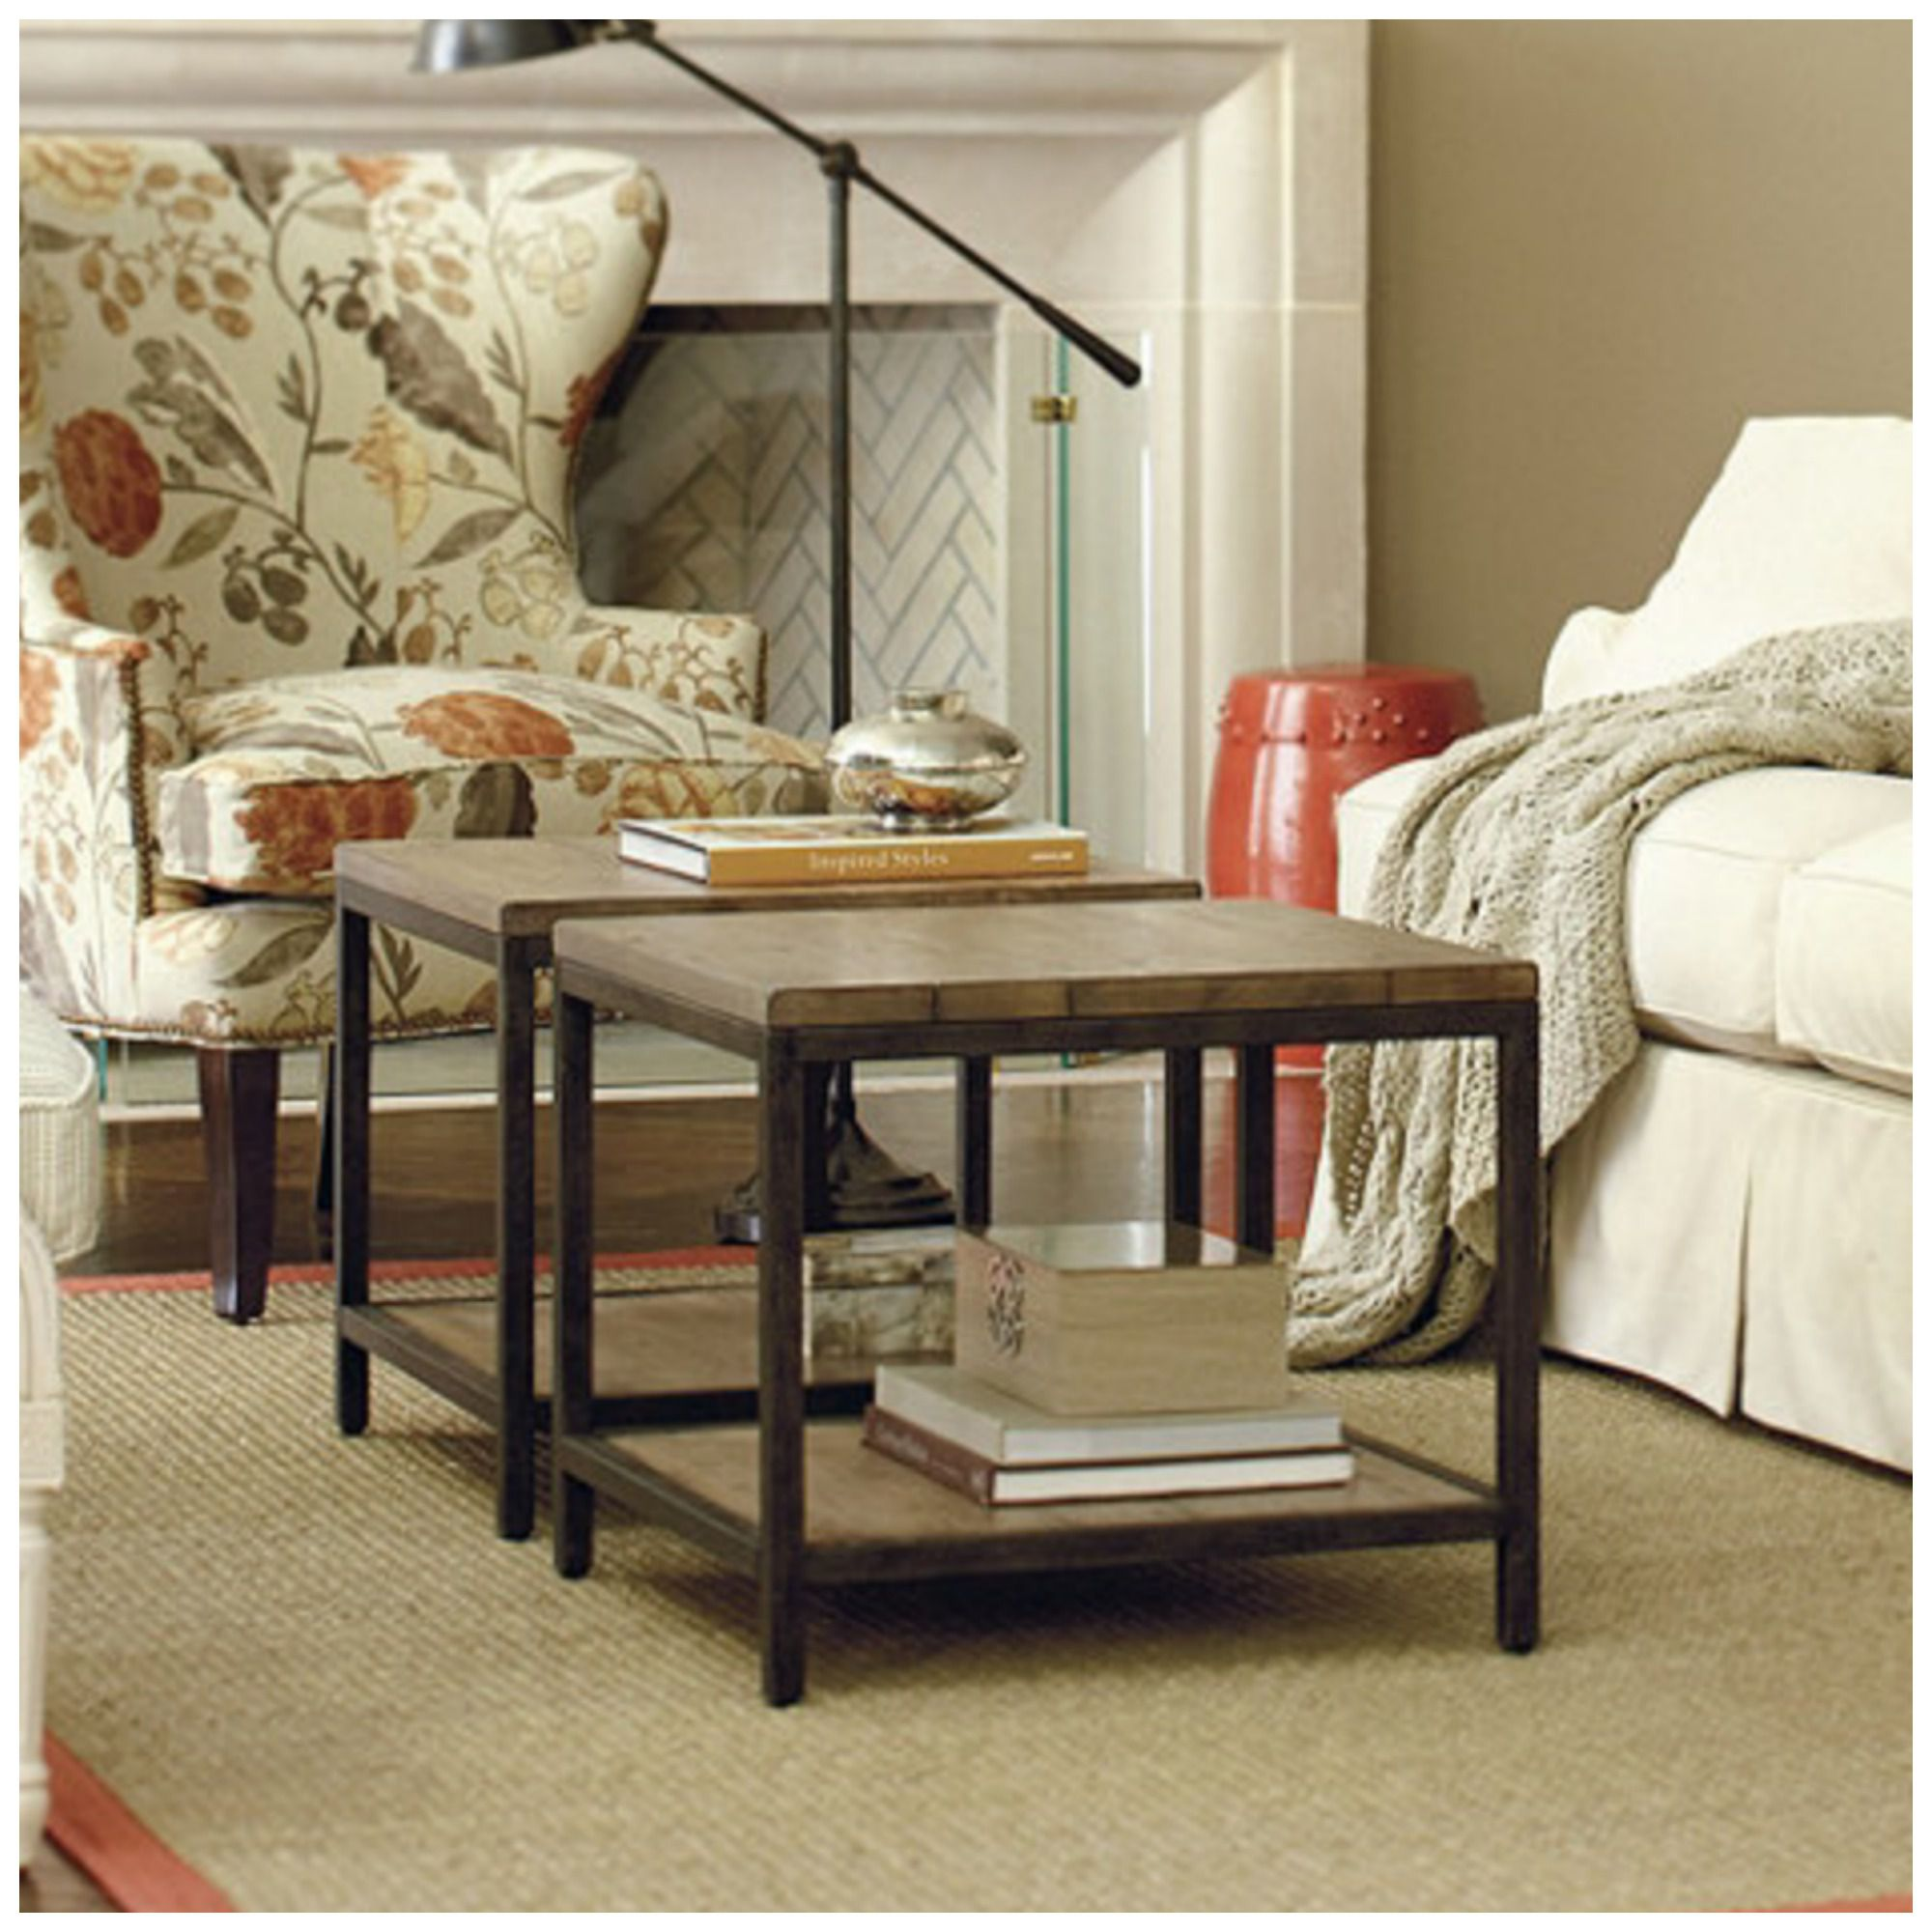 7 Coffee Table Alternatives For Small Living Rooms